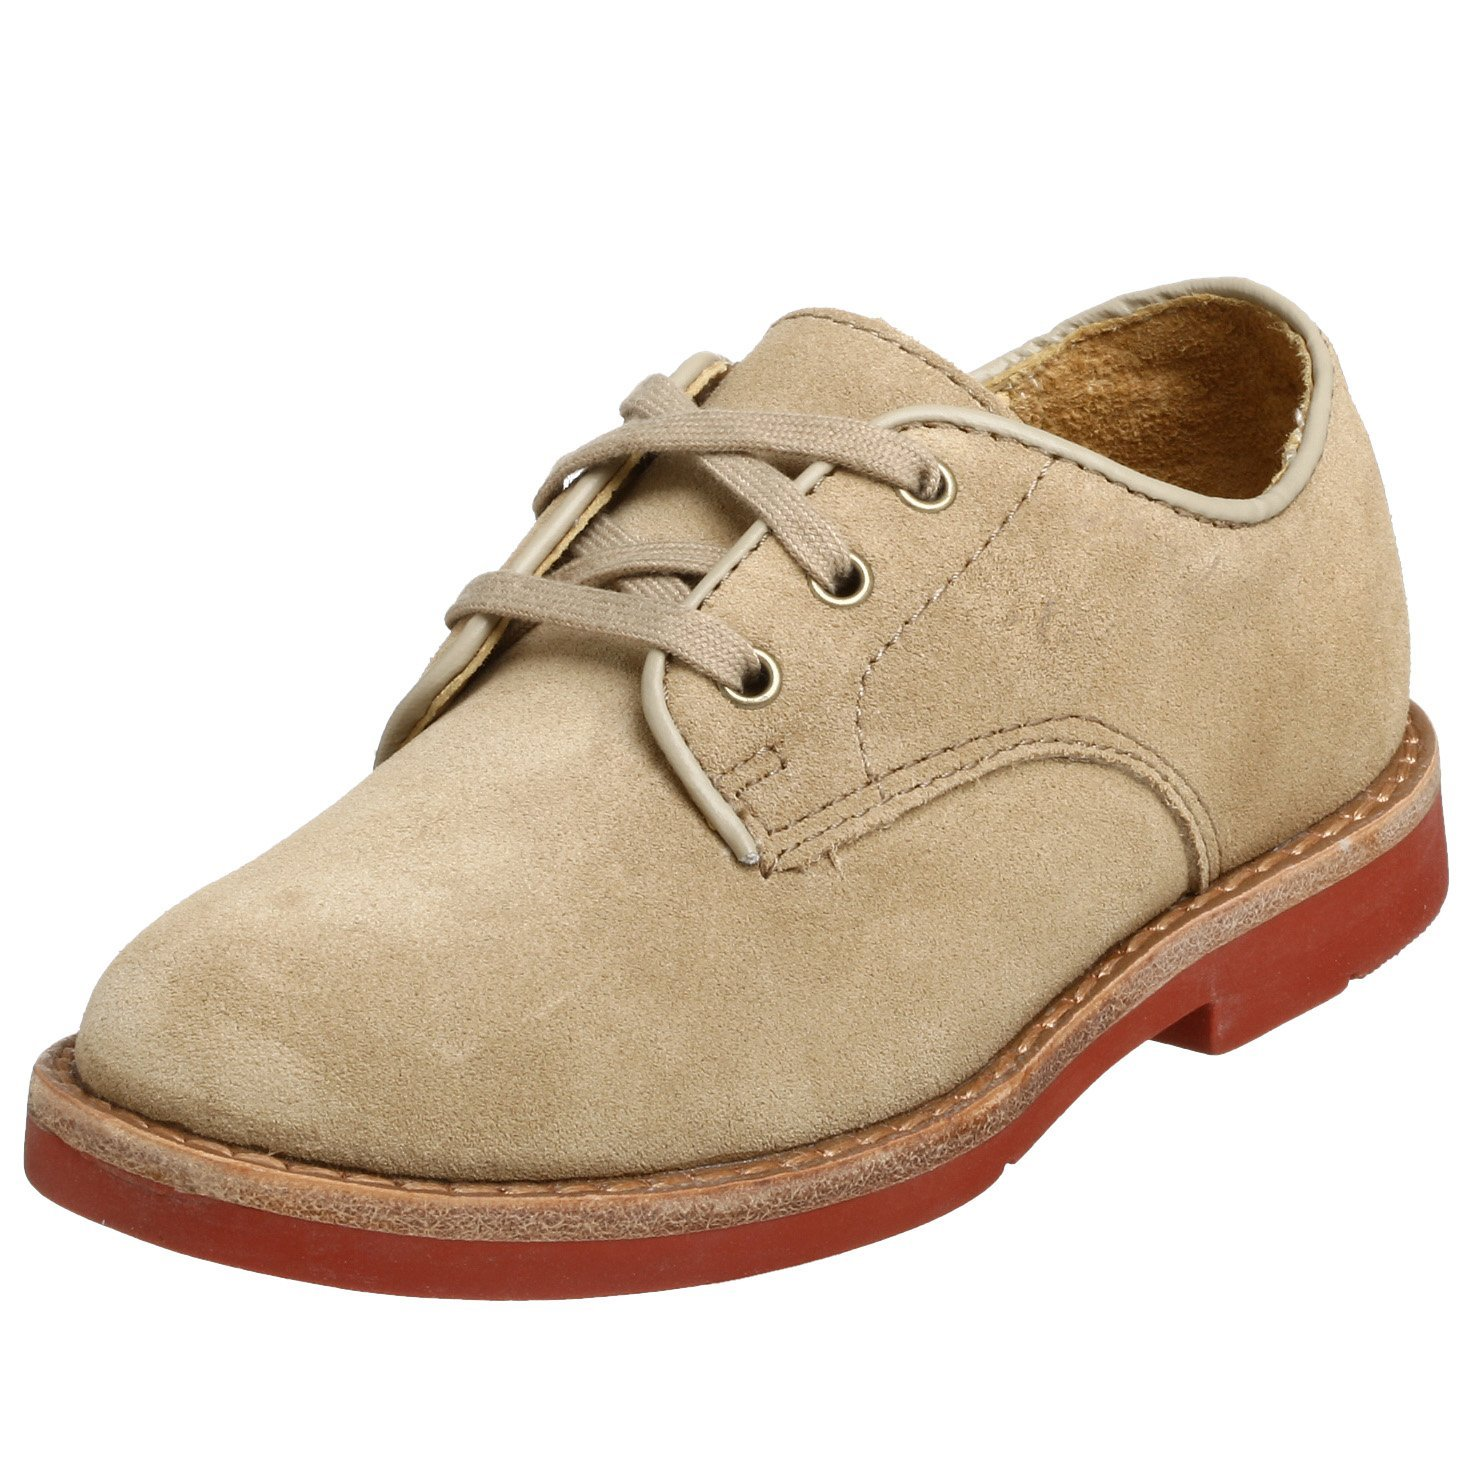 Polo by Ralph Lauren Barton Oxford (Toddler/Little Kid/Big Kid),Dirty Buck Suede,7.5 M US Toddler